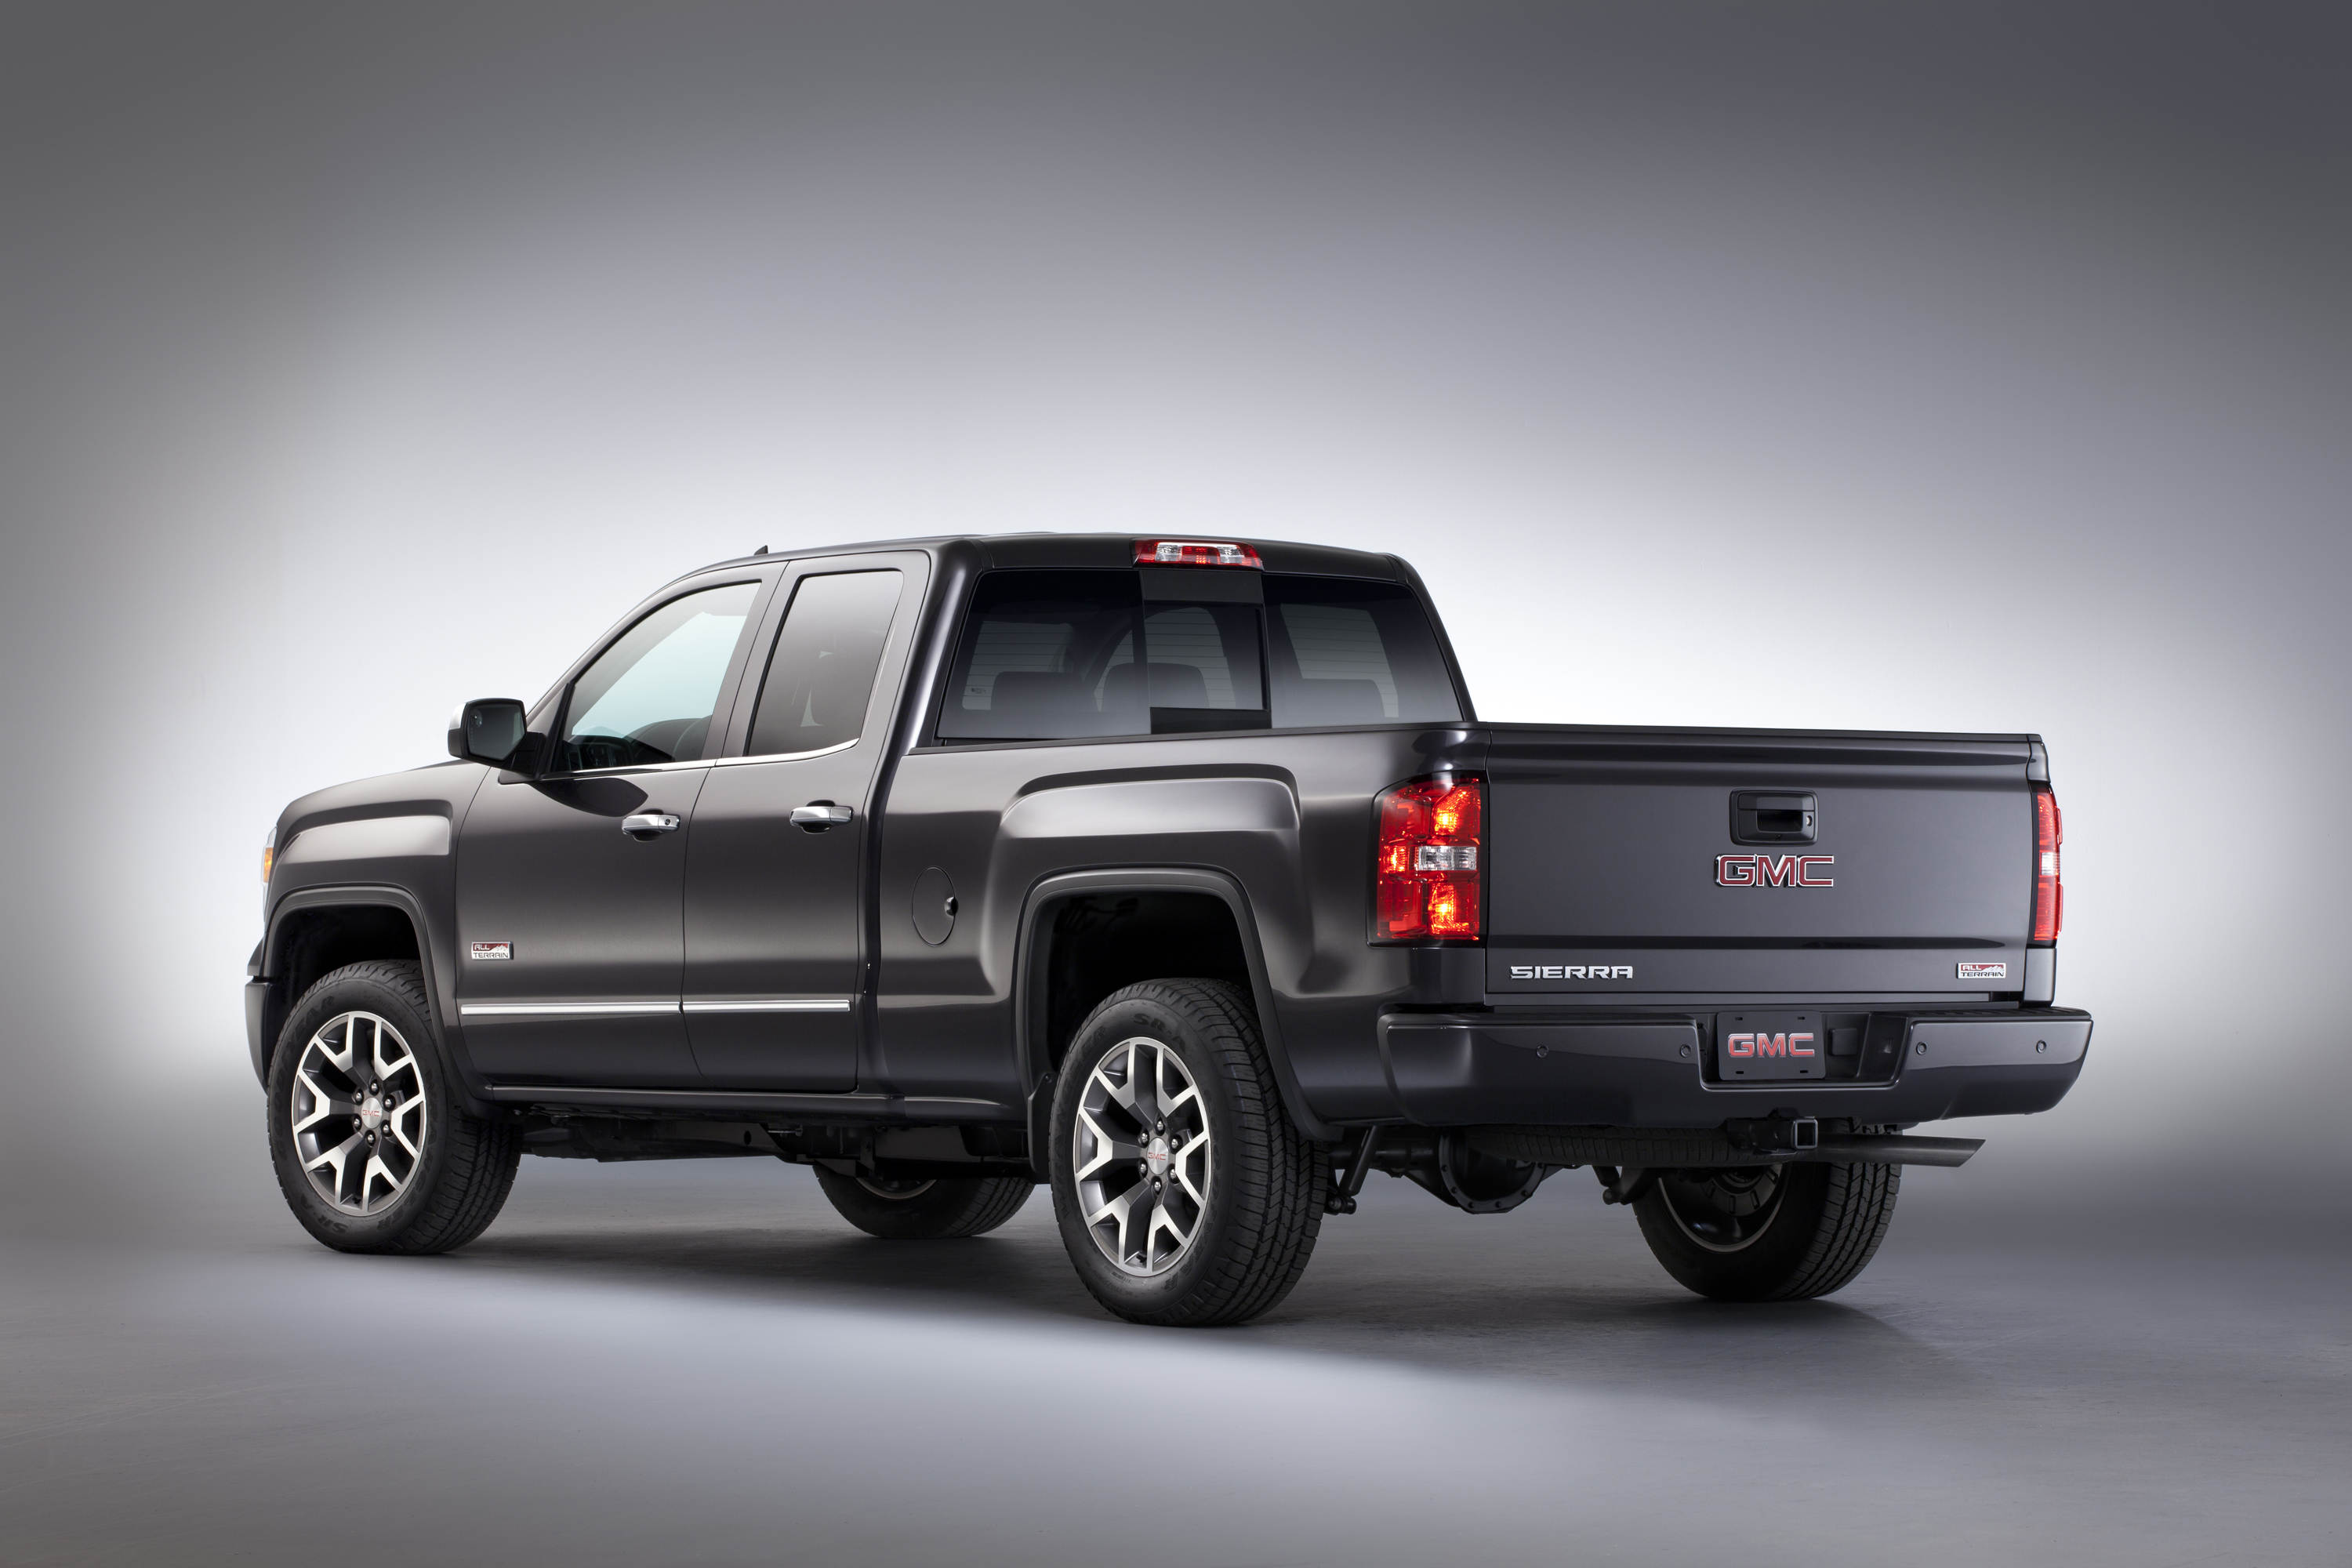 CHEVROLET 2014 SILVERADO OWNERS MANUAL Pdf Download